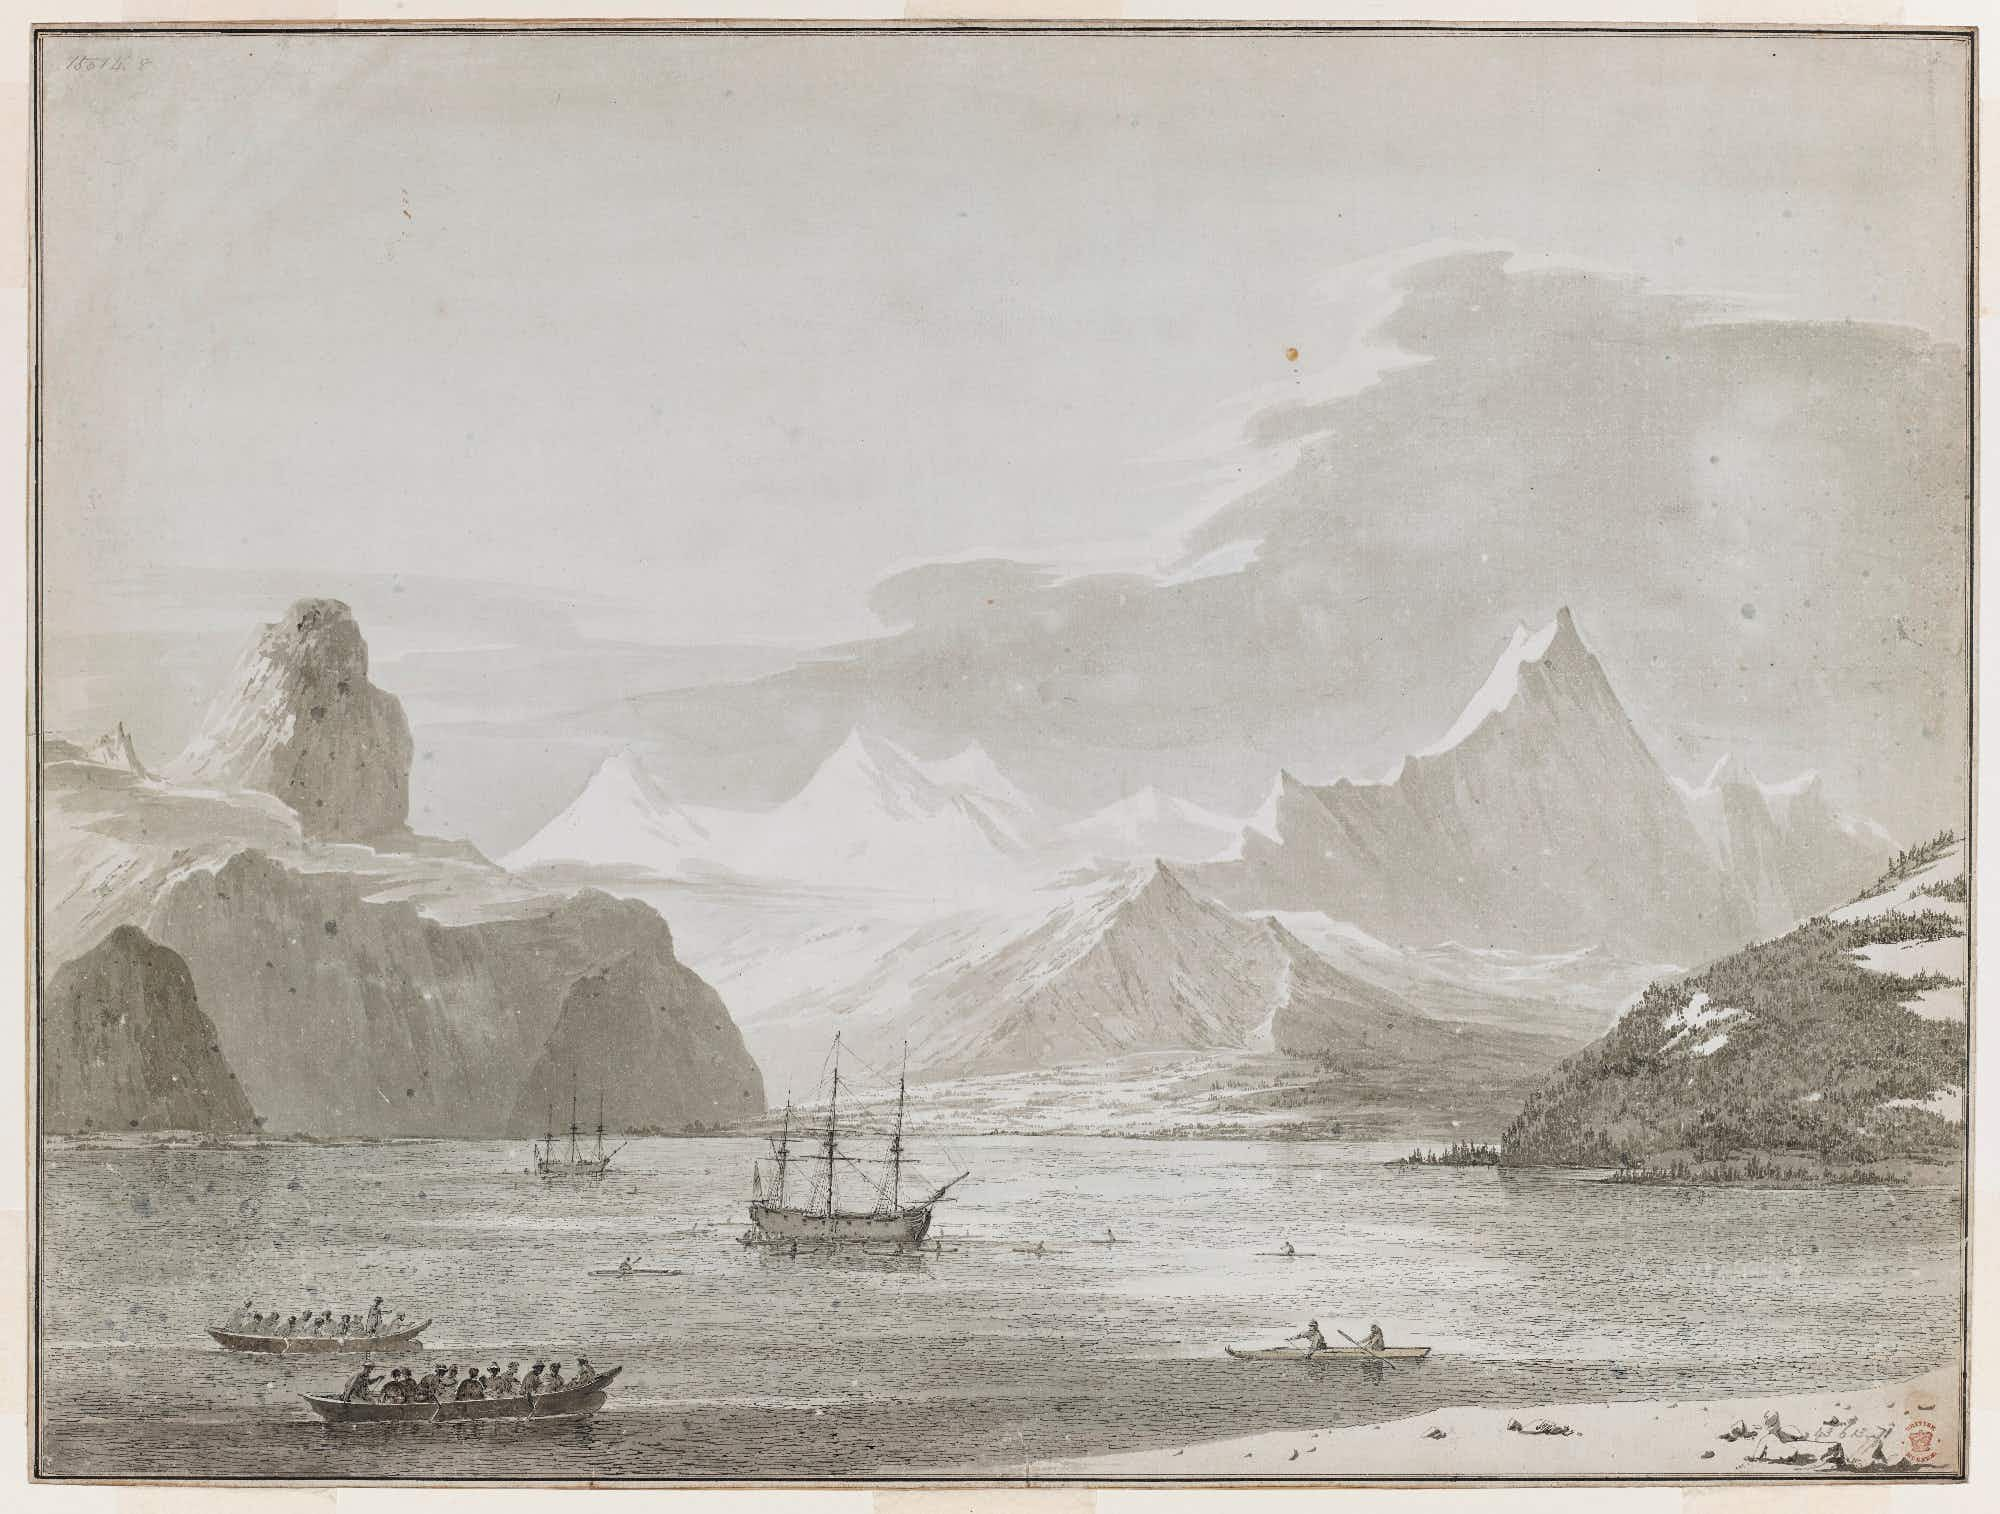 British Library to host exhibition of Captain Cook's voyages